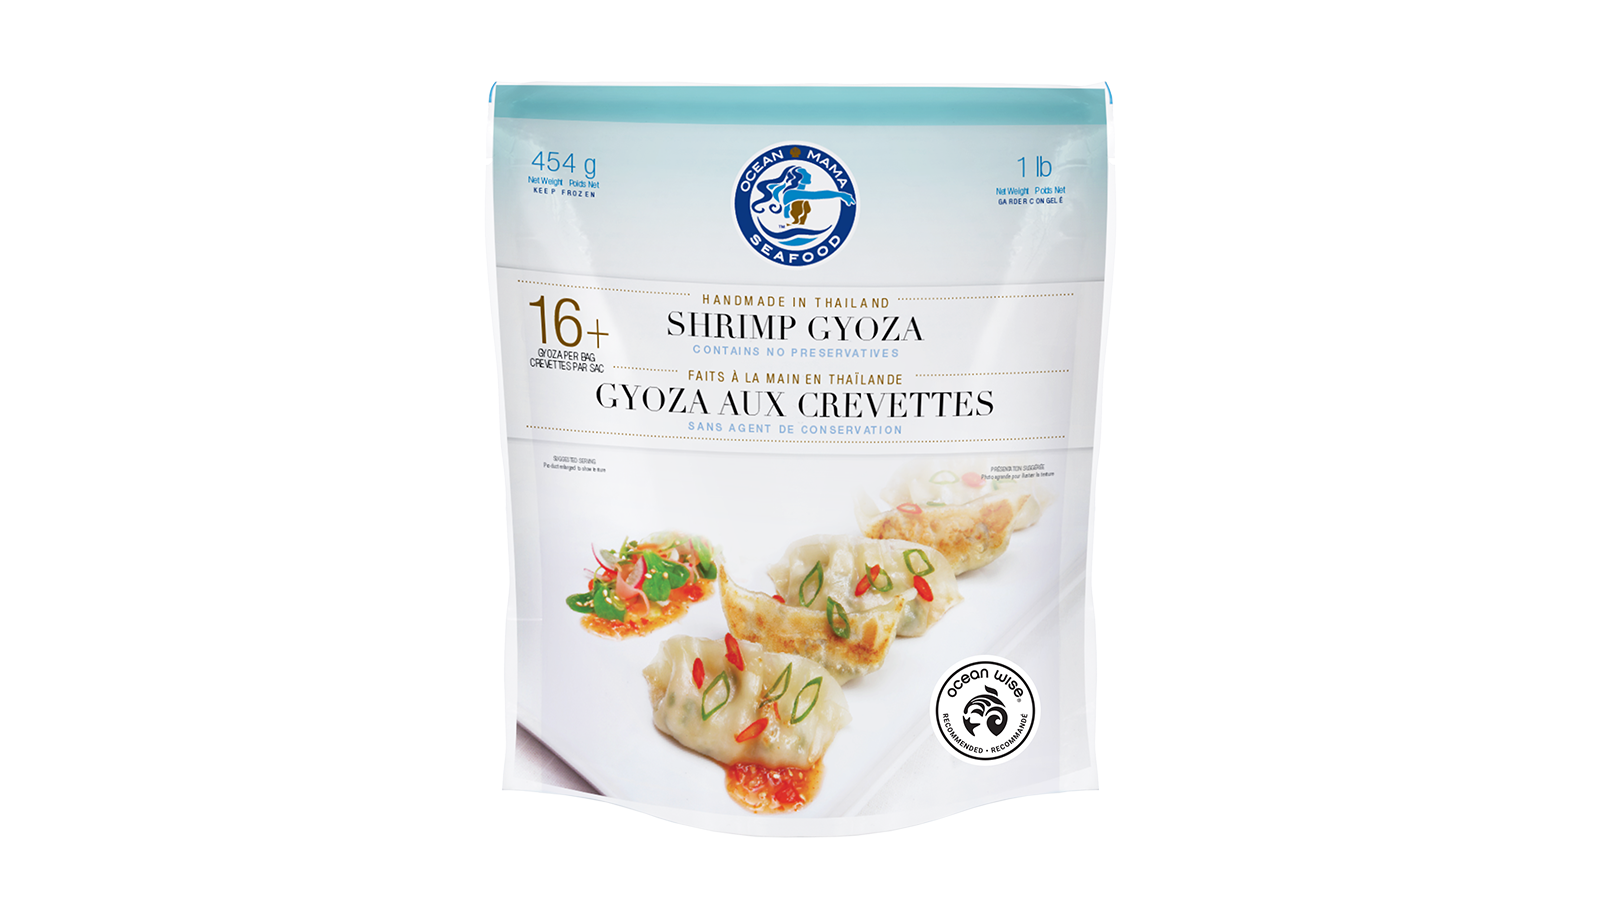 Ocean Wise Shrimp Gyoza - Package Design - Food Photography